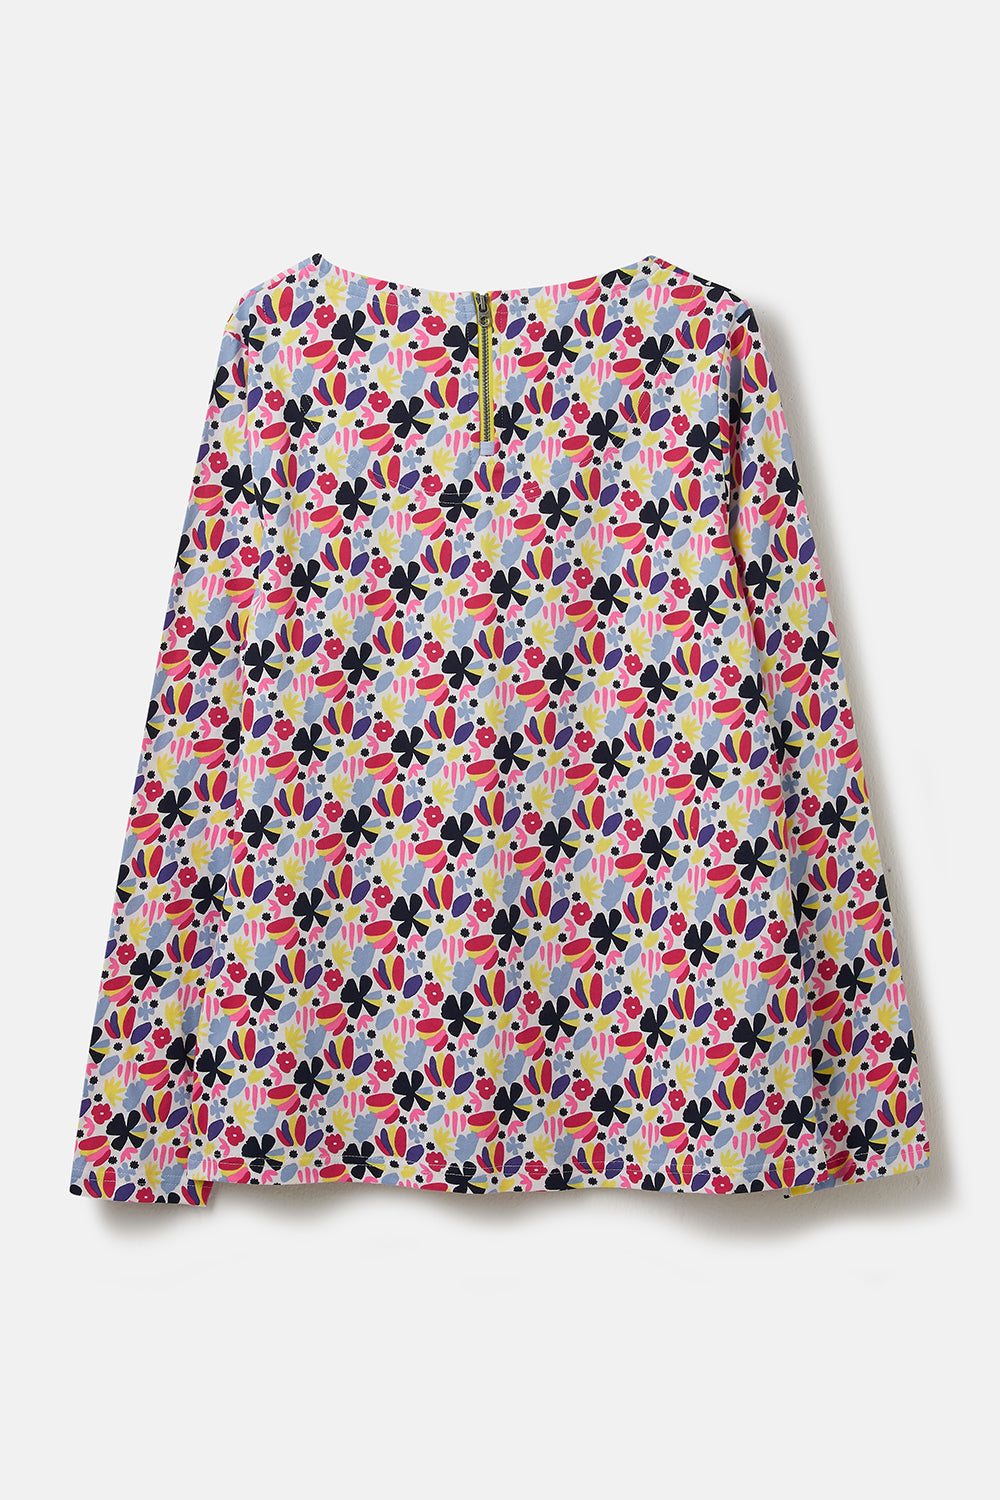 Causeway Breton Top - Abstract Floral